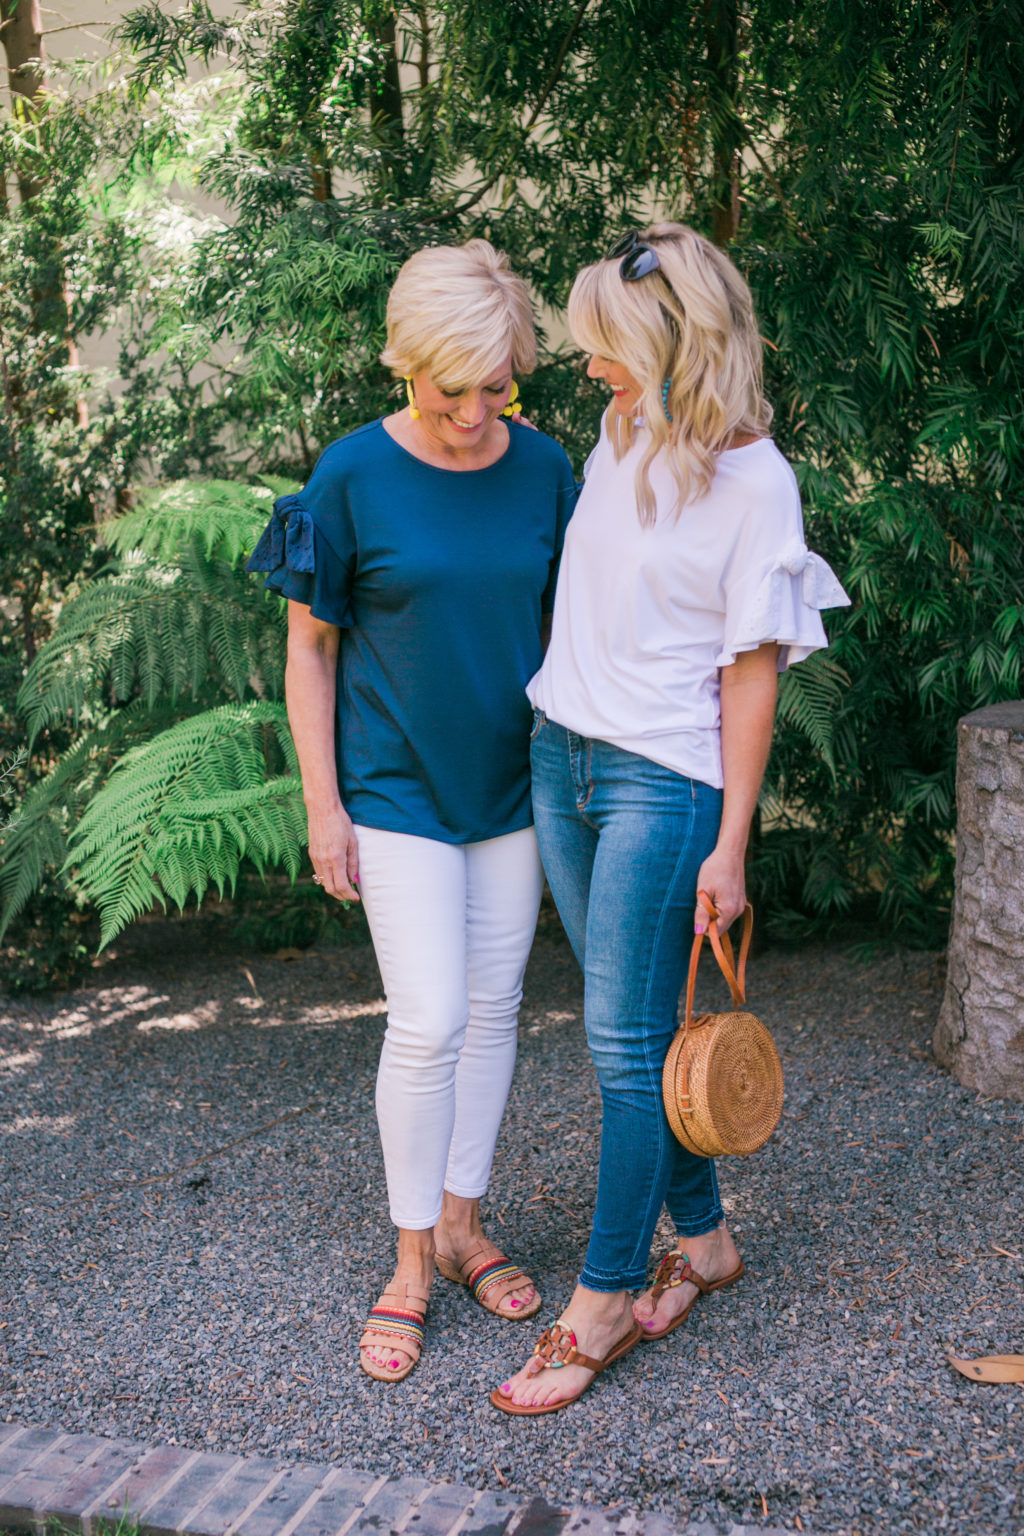 gibson hi sugarplum nordstrom collection kahala tie sleeve top in navy and white